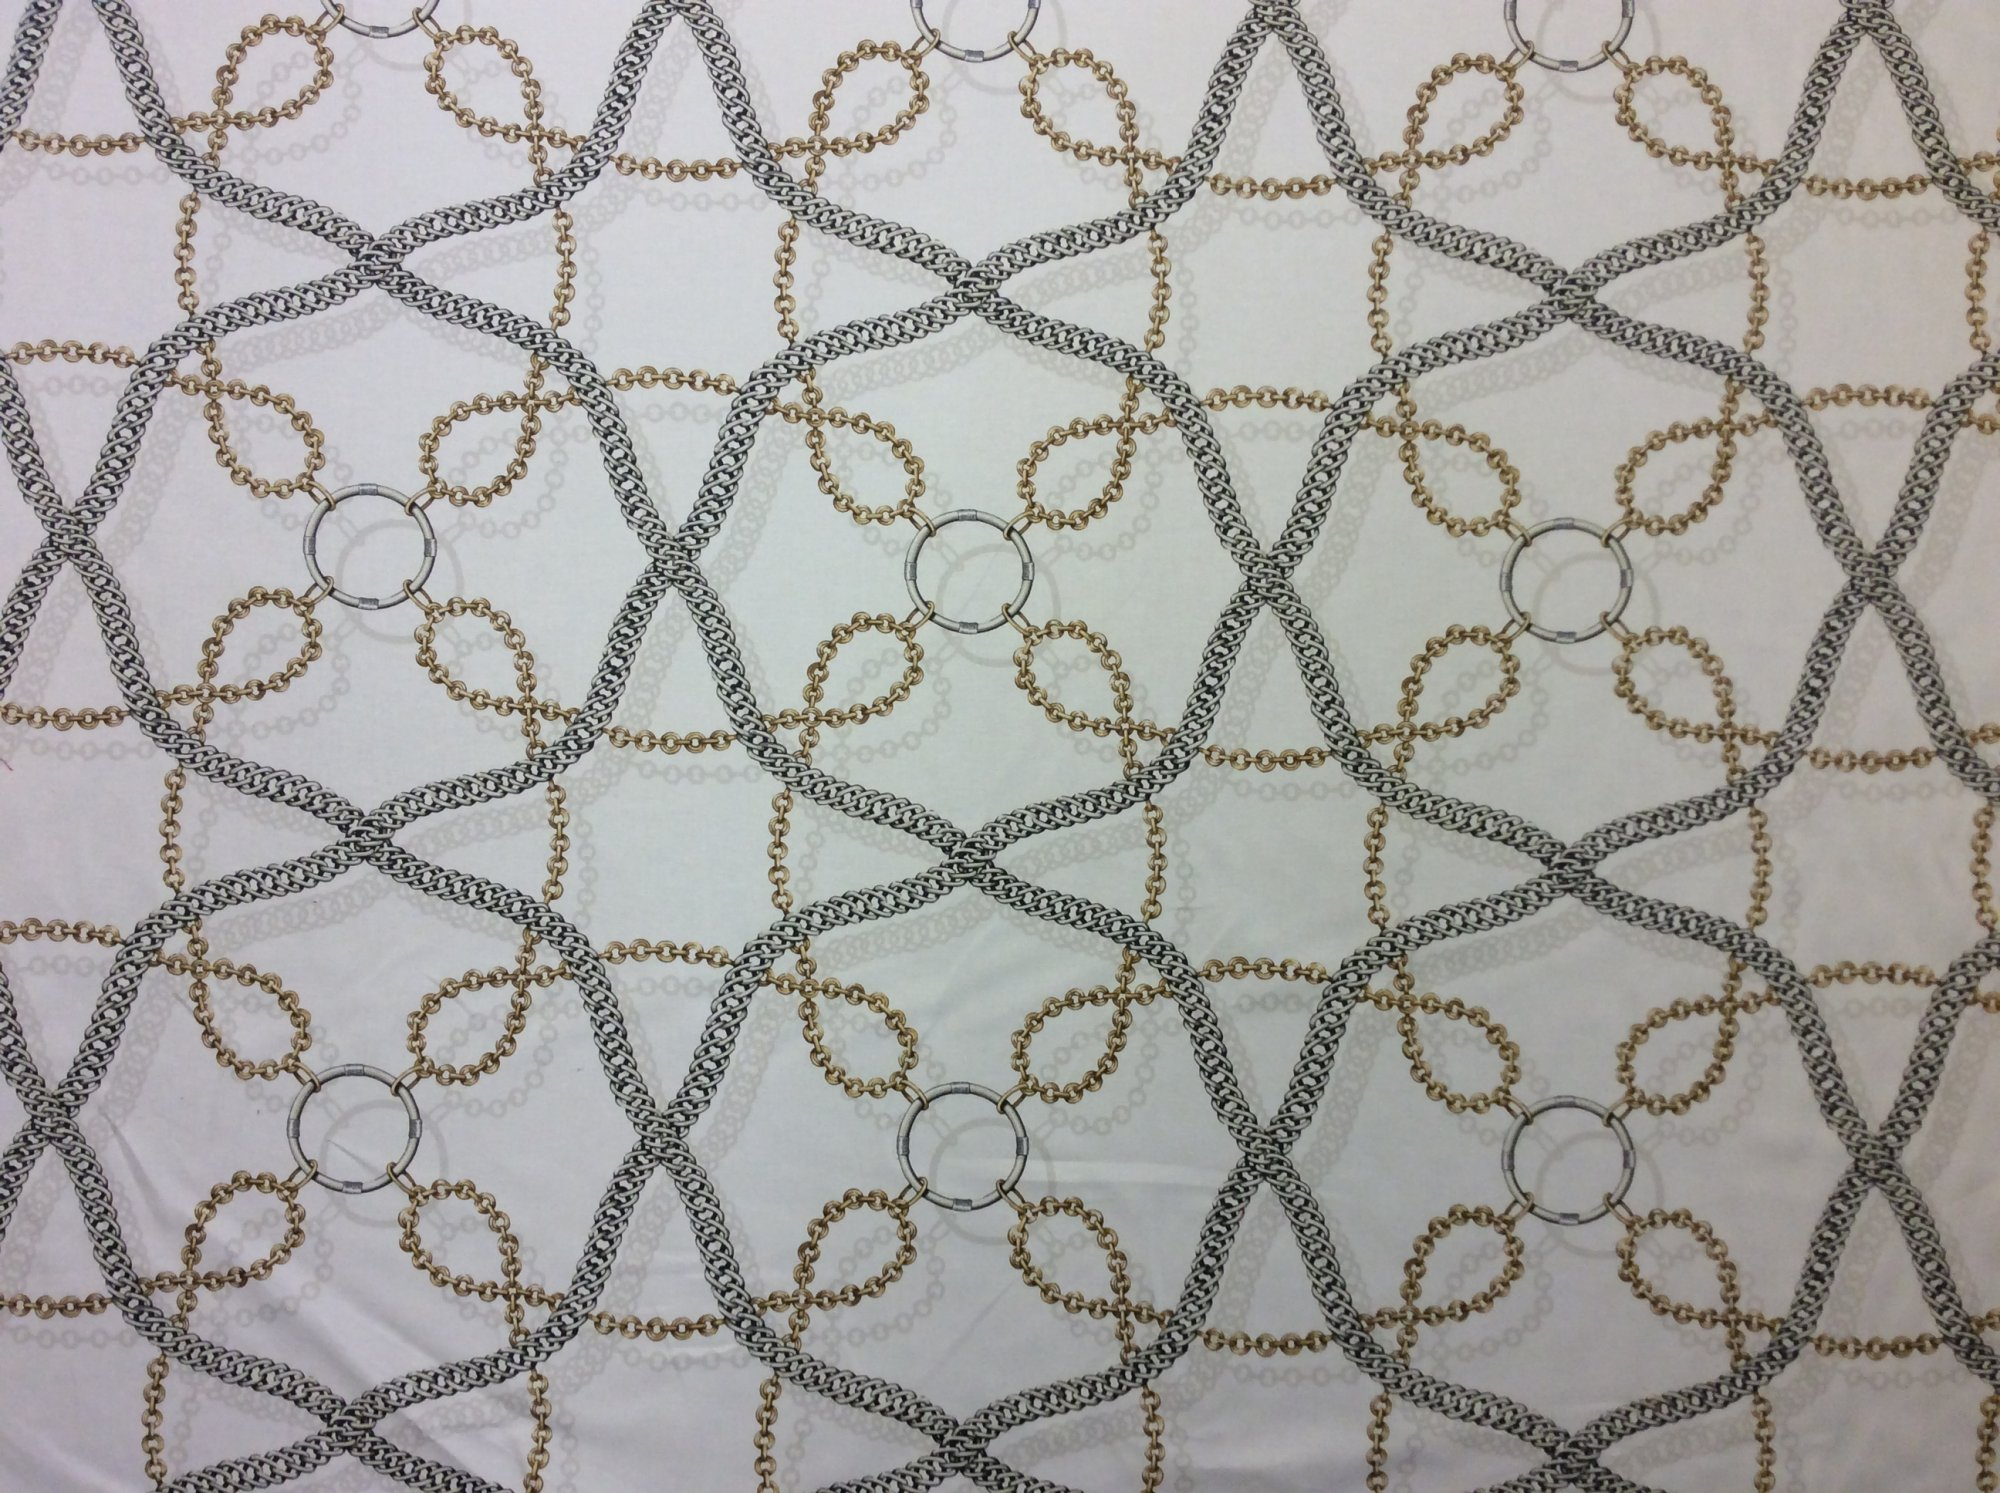 6 Yard Bolt!!! Waverly Chain Reaction Cotton Print Mid Weight Upholstery Home Dec Fabric LC33